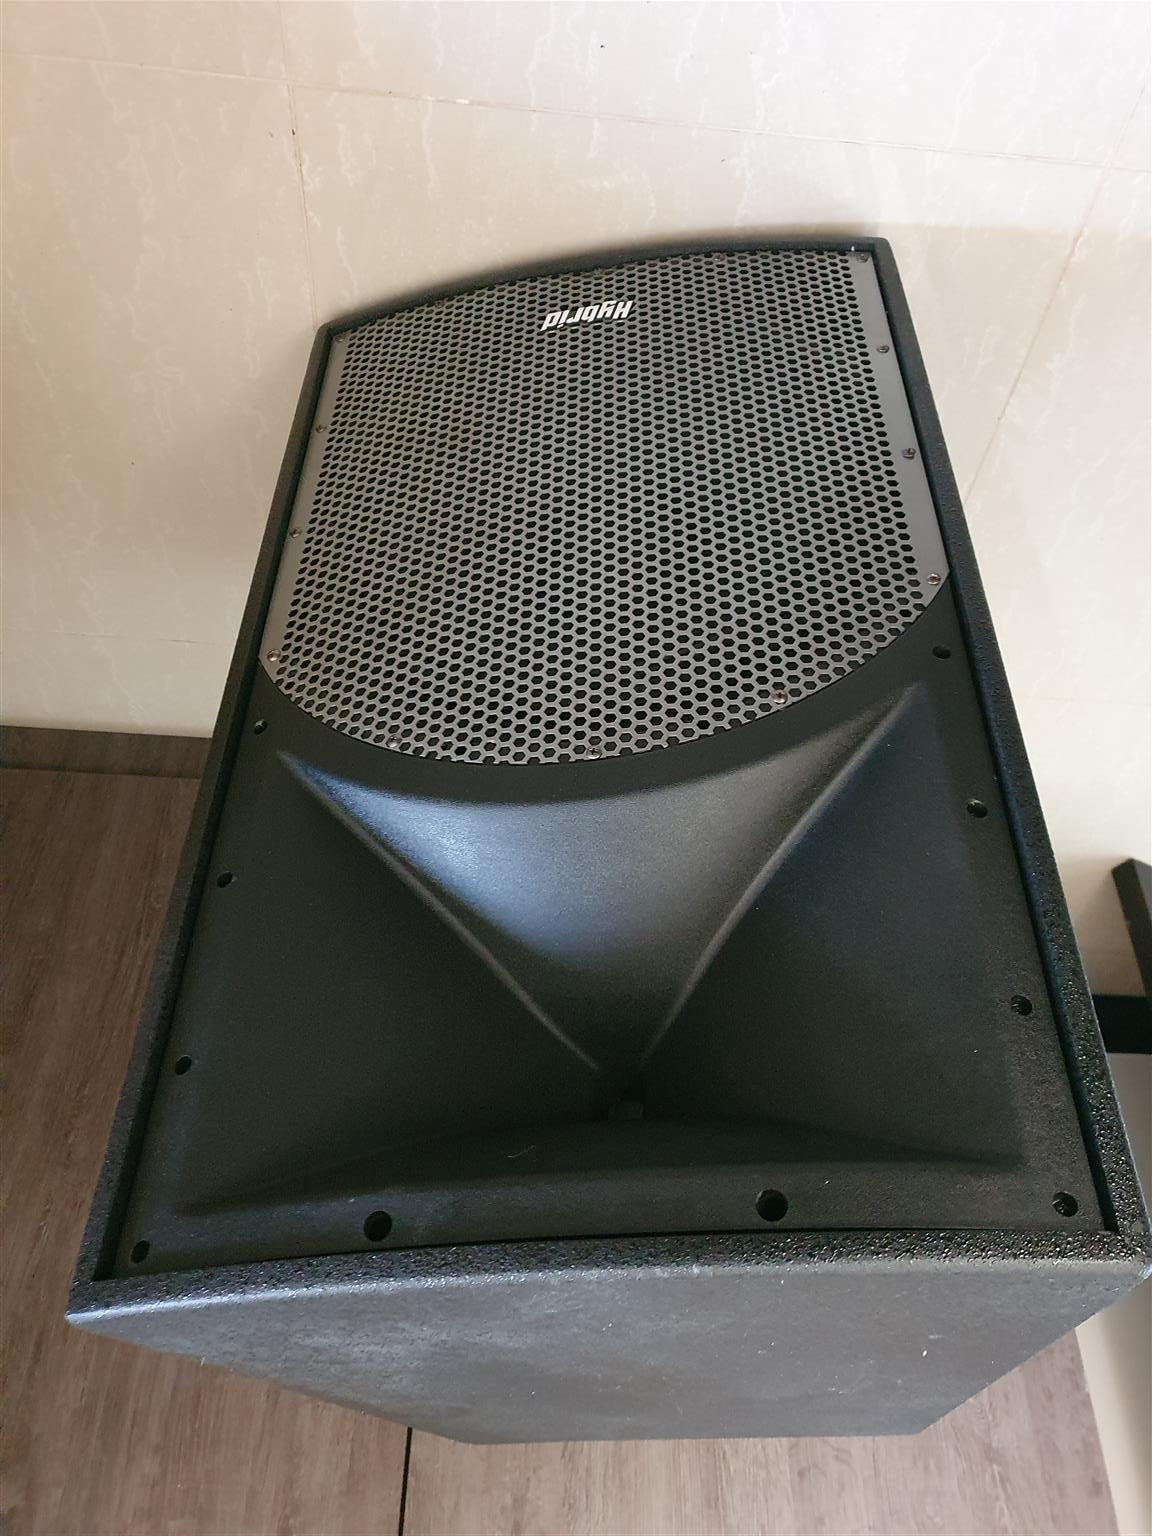 Hybrid prof sound system for events  R6750 speakers -  amps - wireless mikes